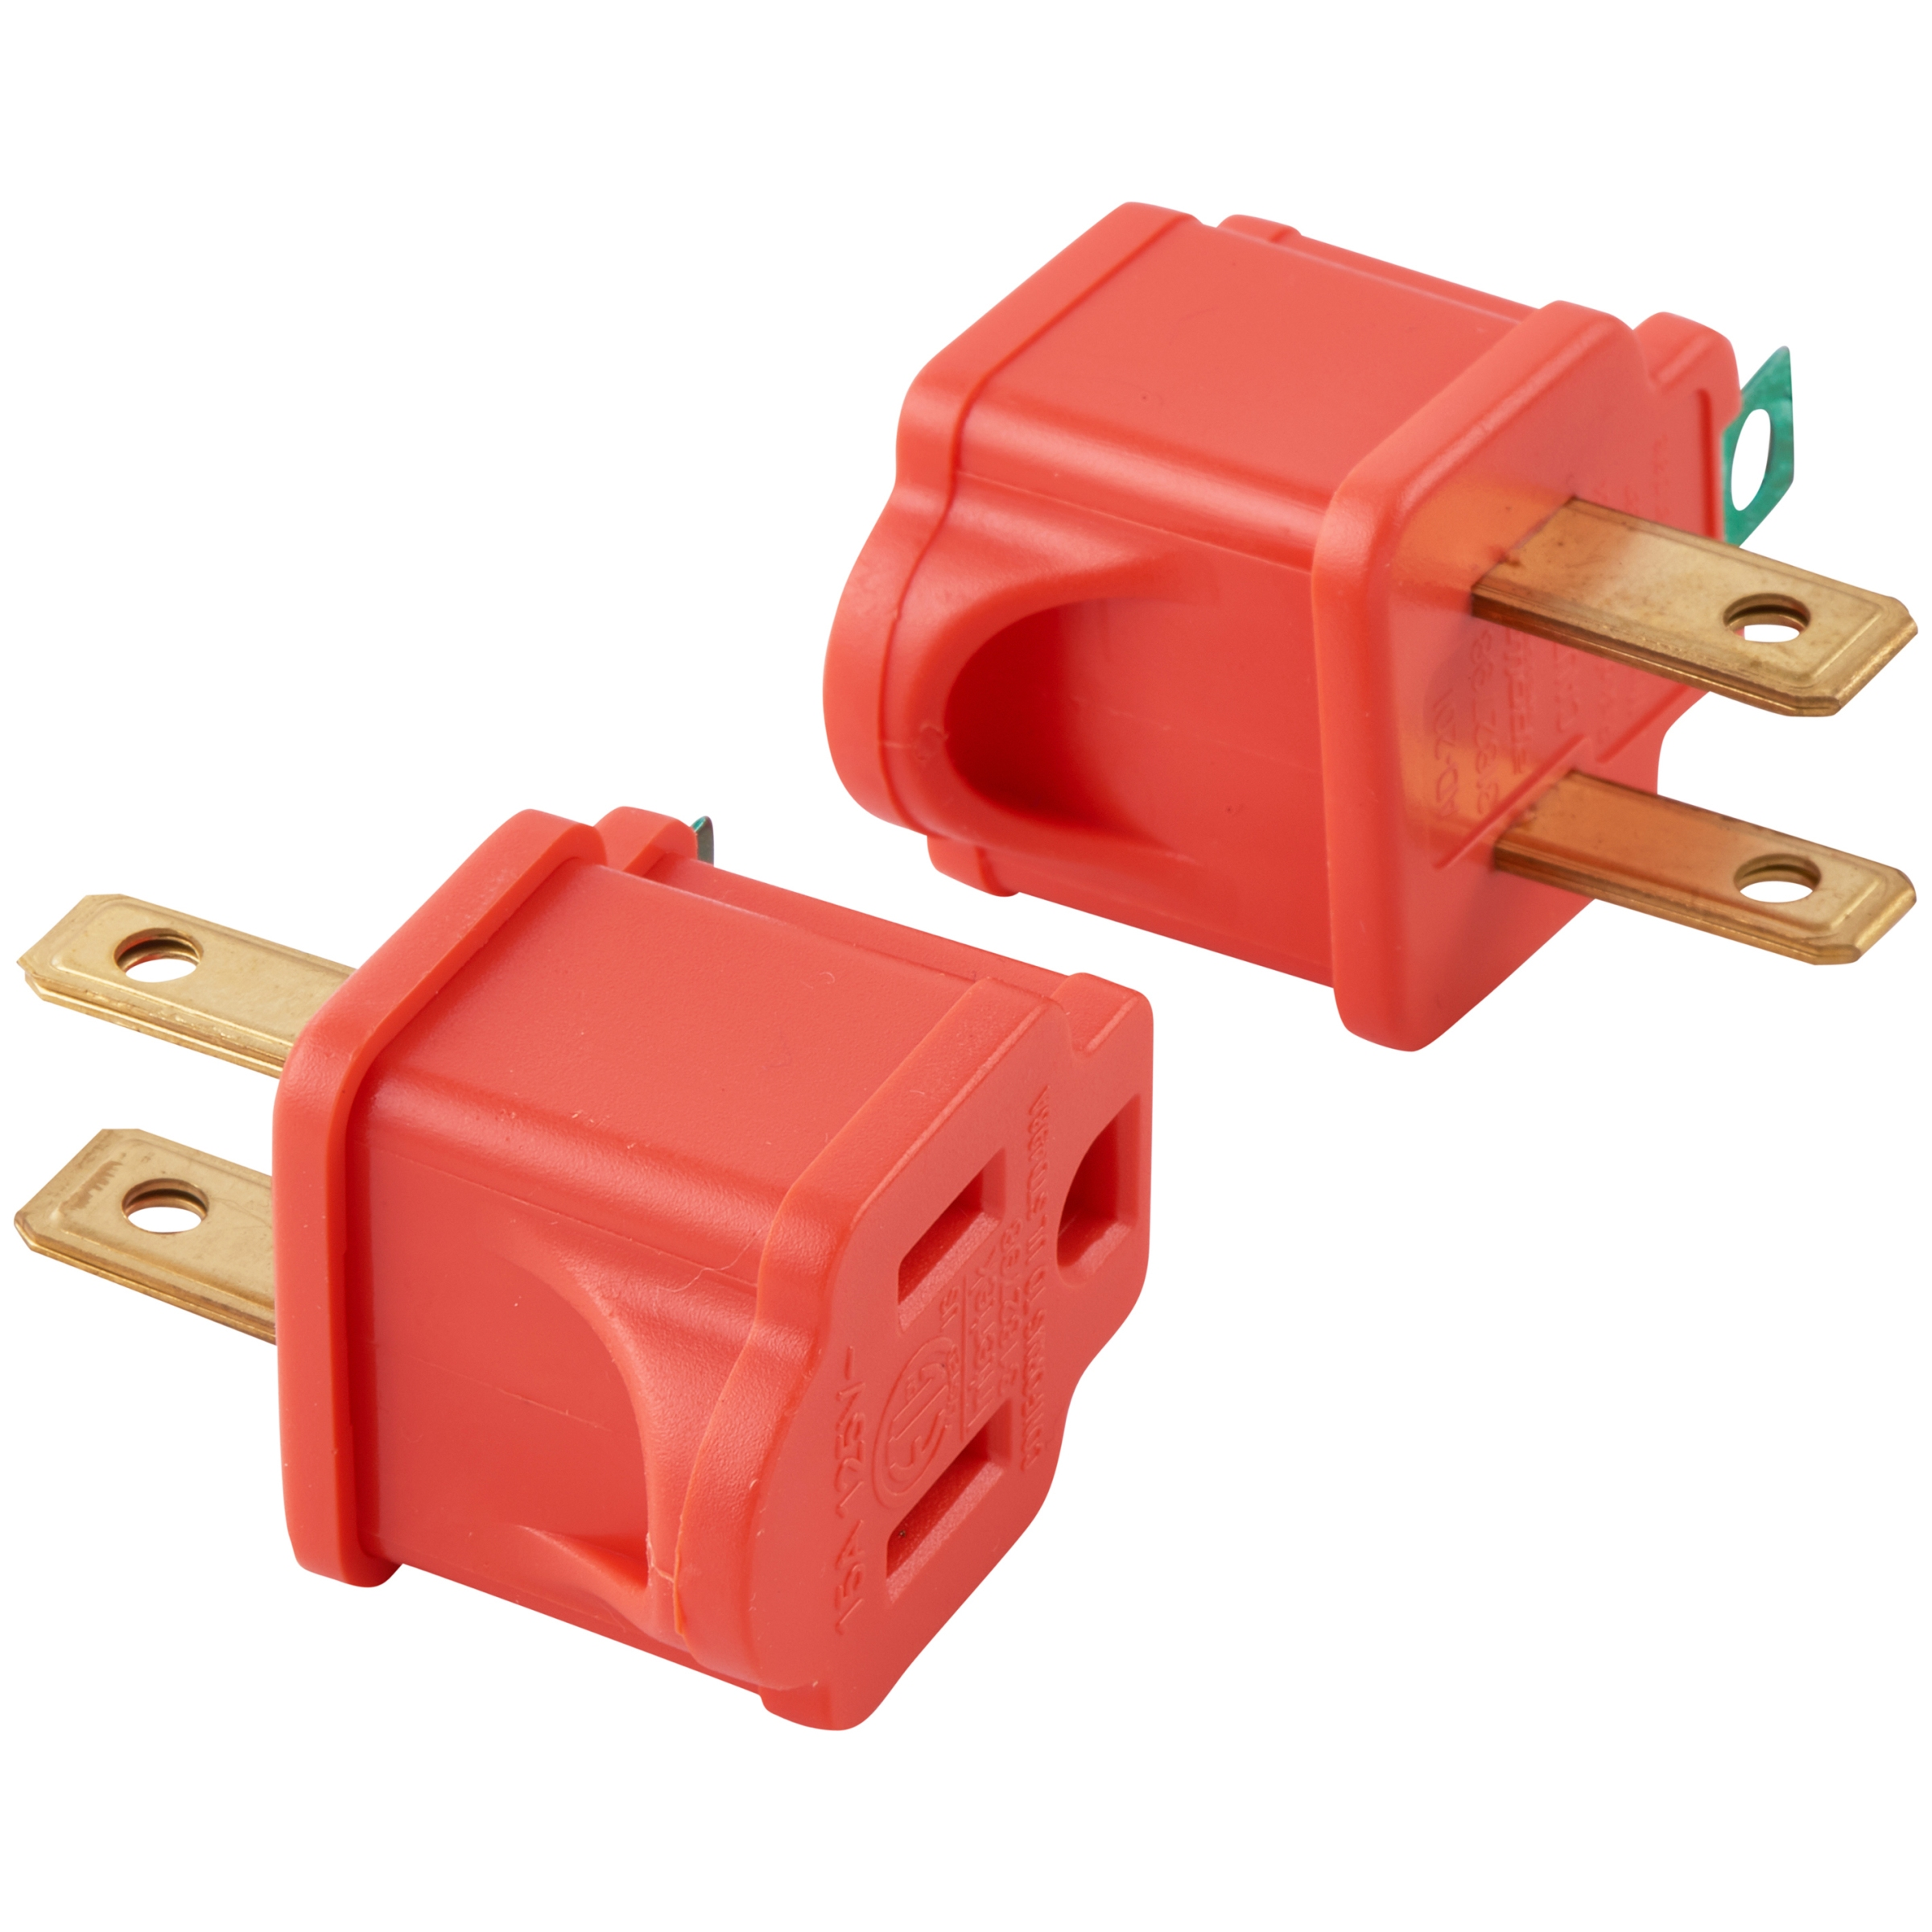 Hyper Tough Polarized Grounded Adapter, 2-Pack